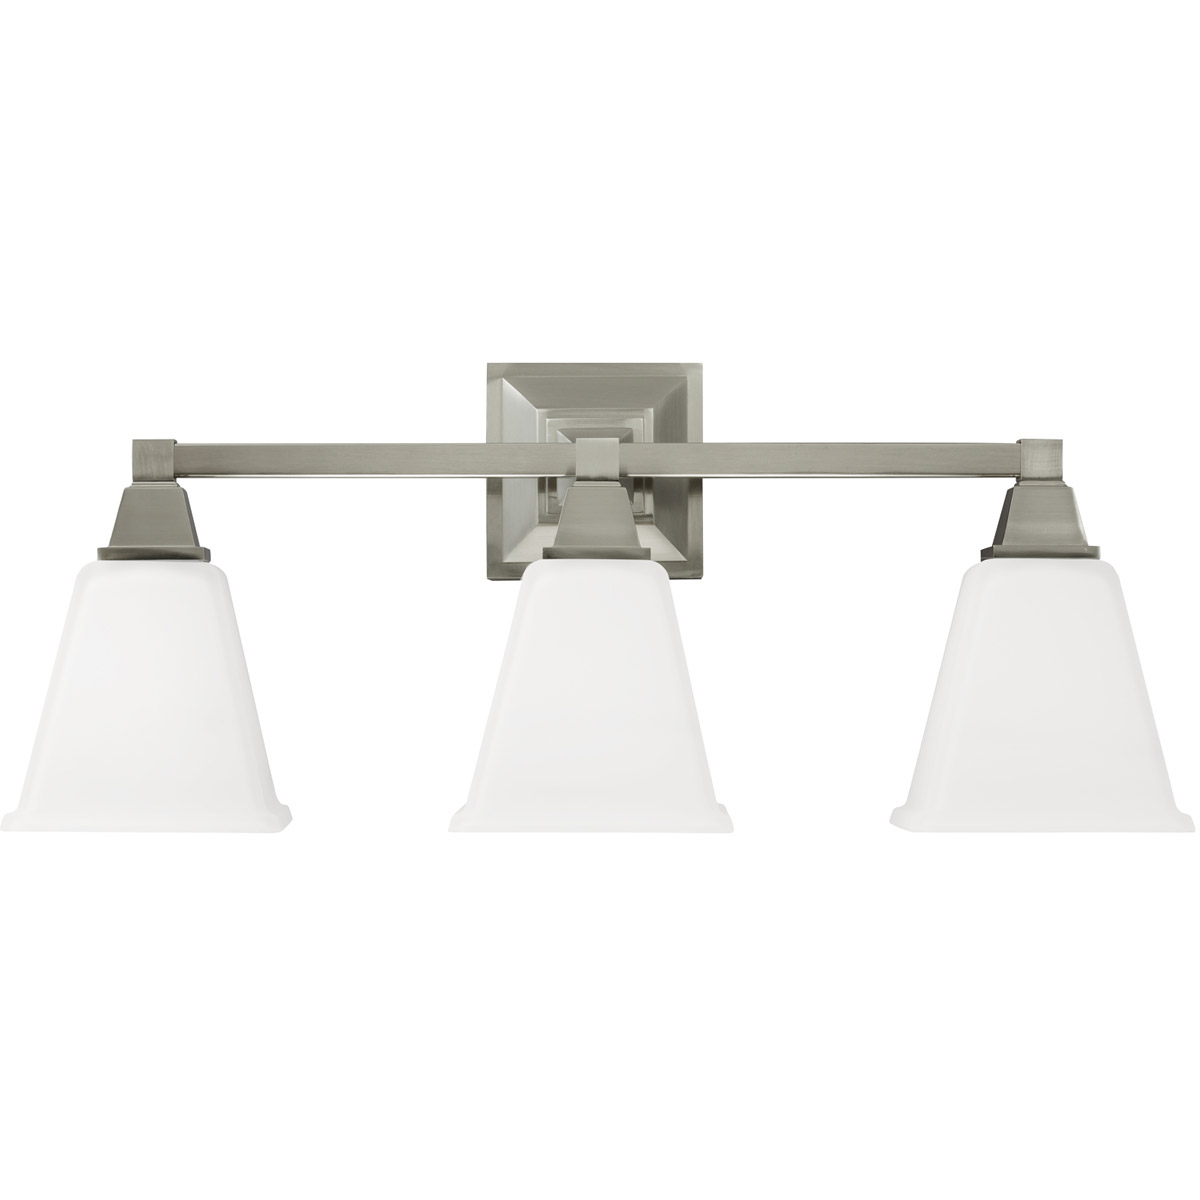 Sea Gull Denhelm 3 Light Bath Vanity in Brushed Nickel 4450403-962